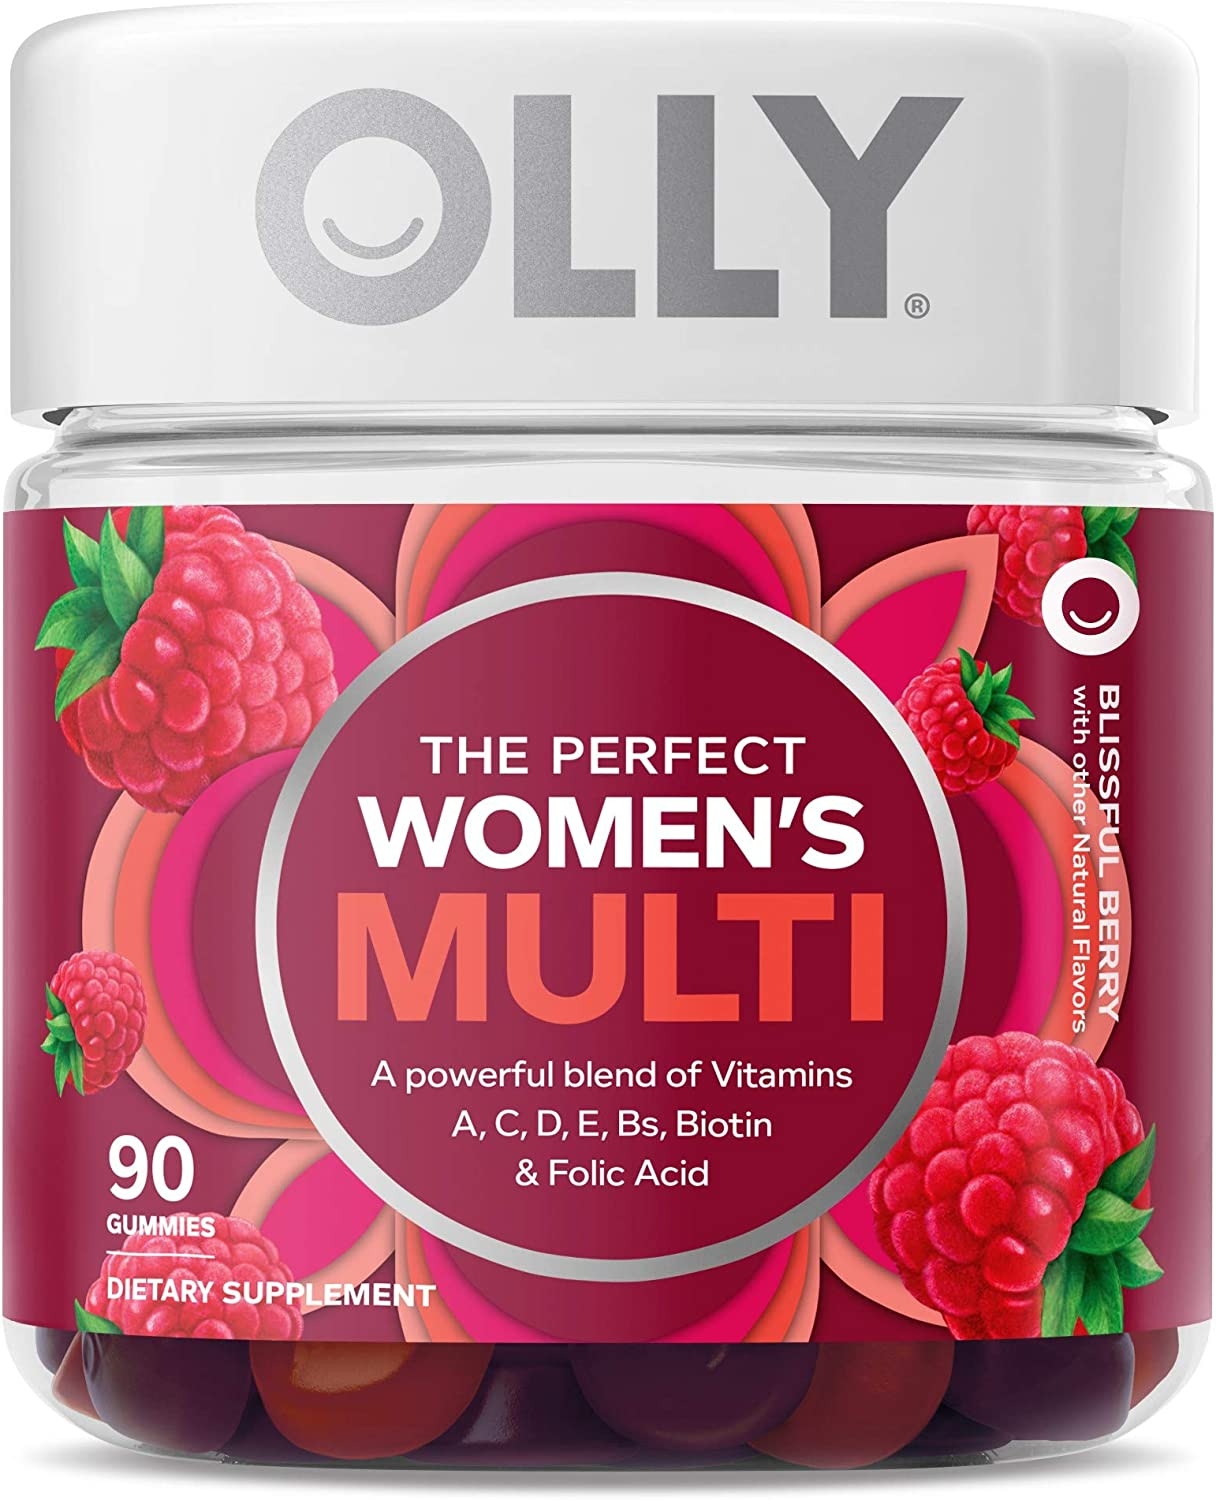 OLLY The Perfect Womens Gummy Multivitamin